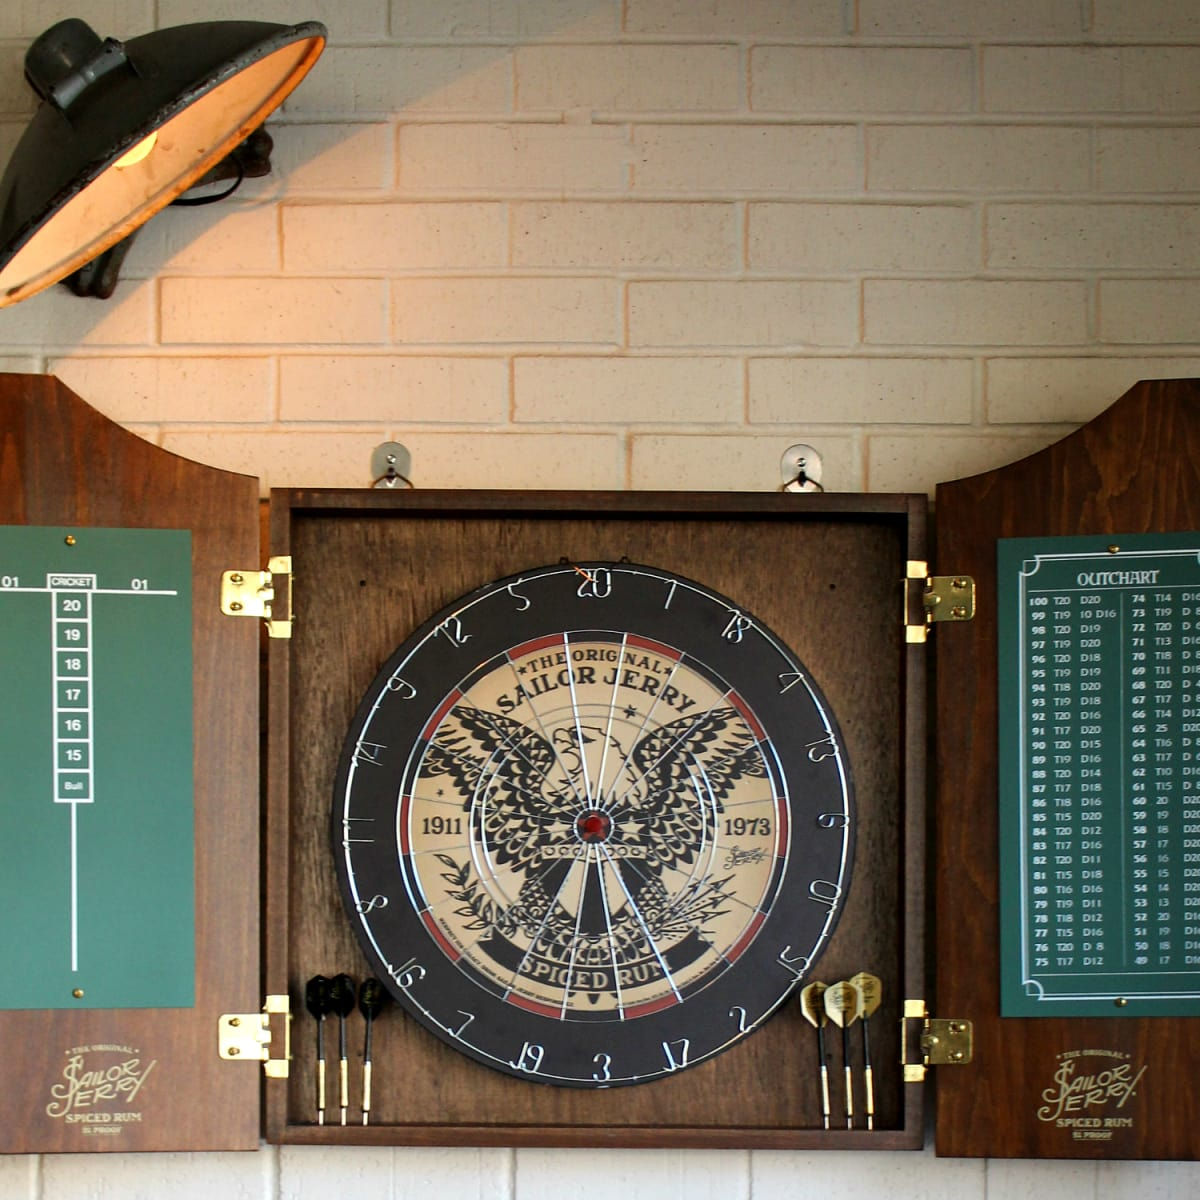 Parlor & Yard bar Dunlap ATX west sixth February 2016 Sailor Jerry dart board